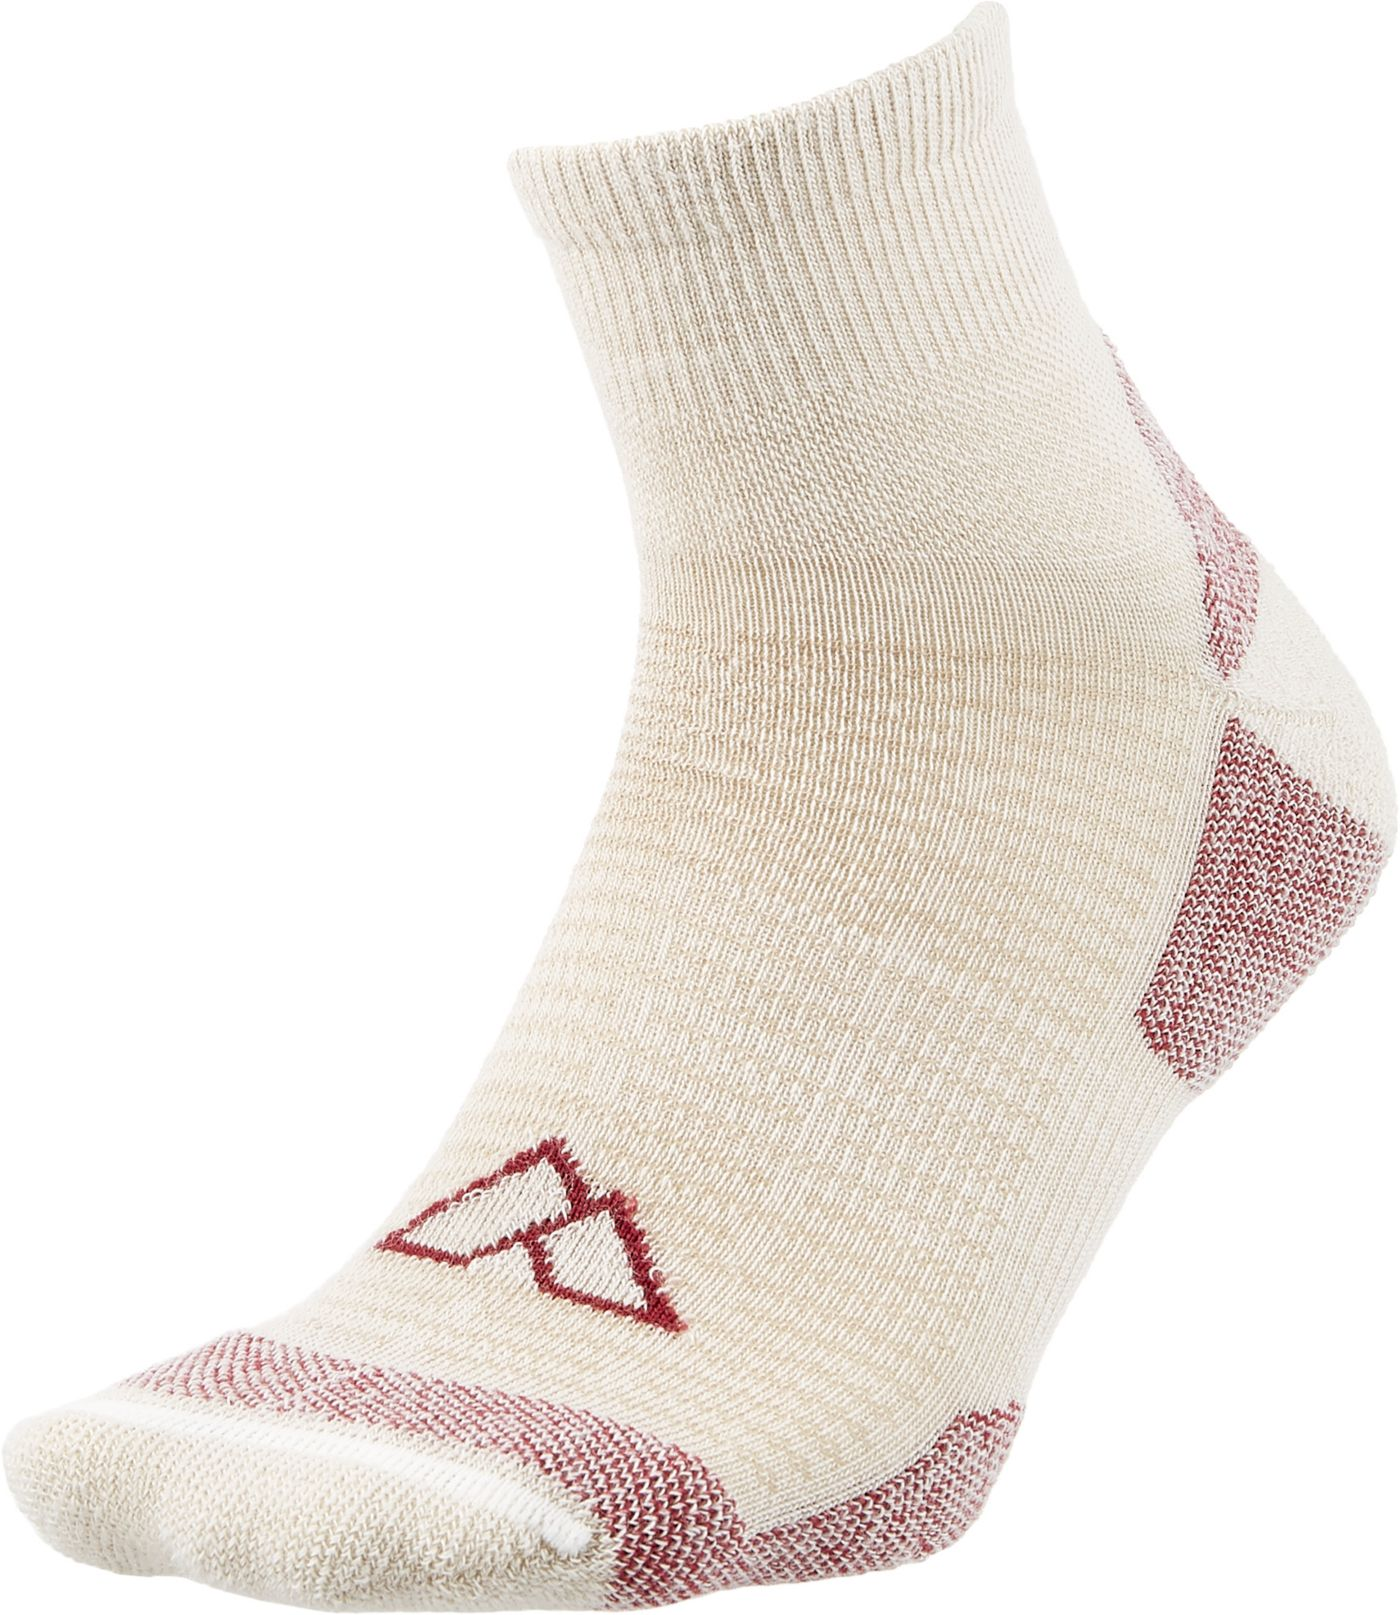 Alpine Design Women's Quarter Hiking Socks